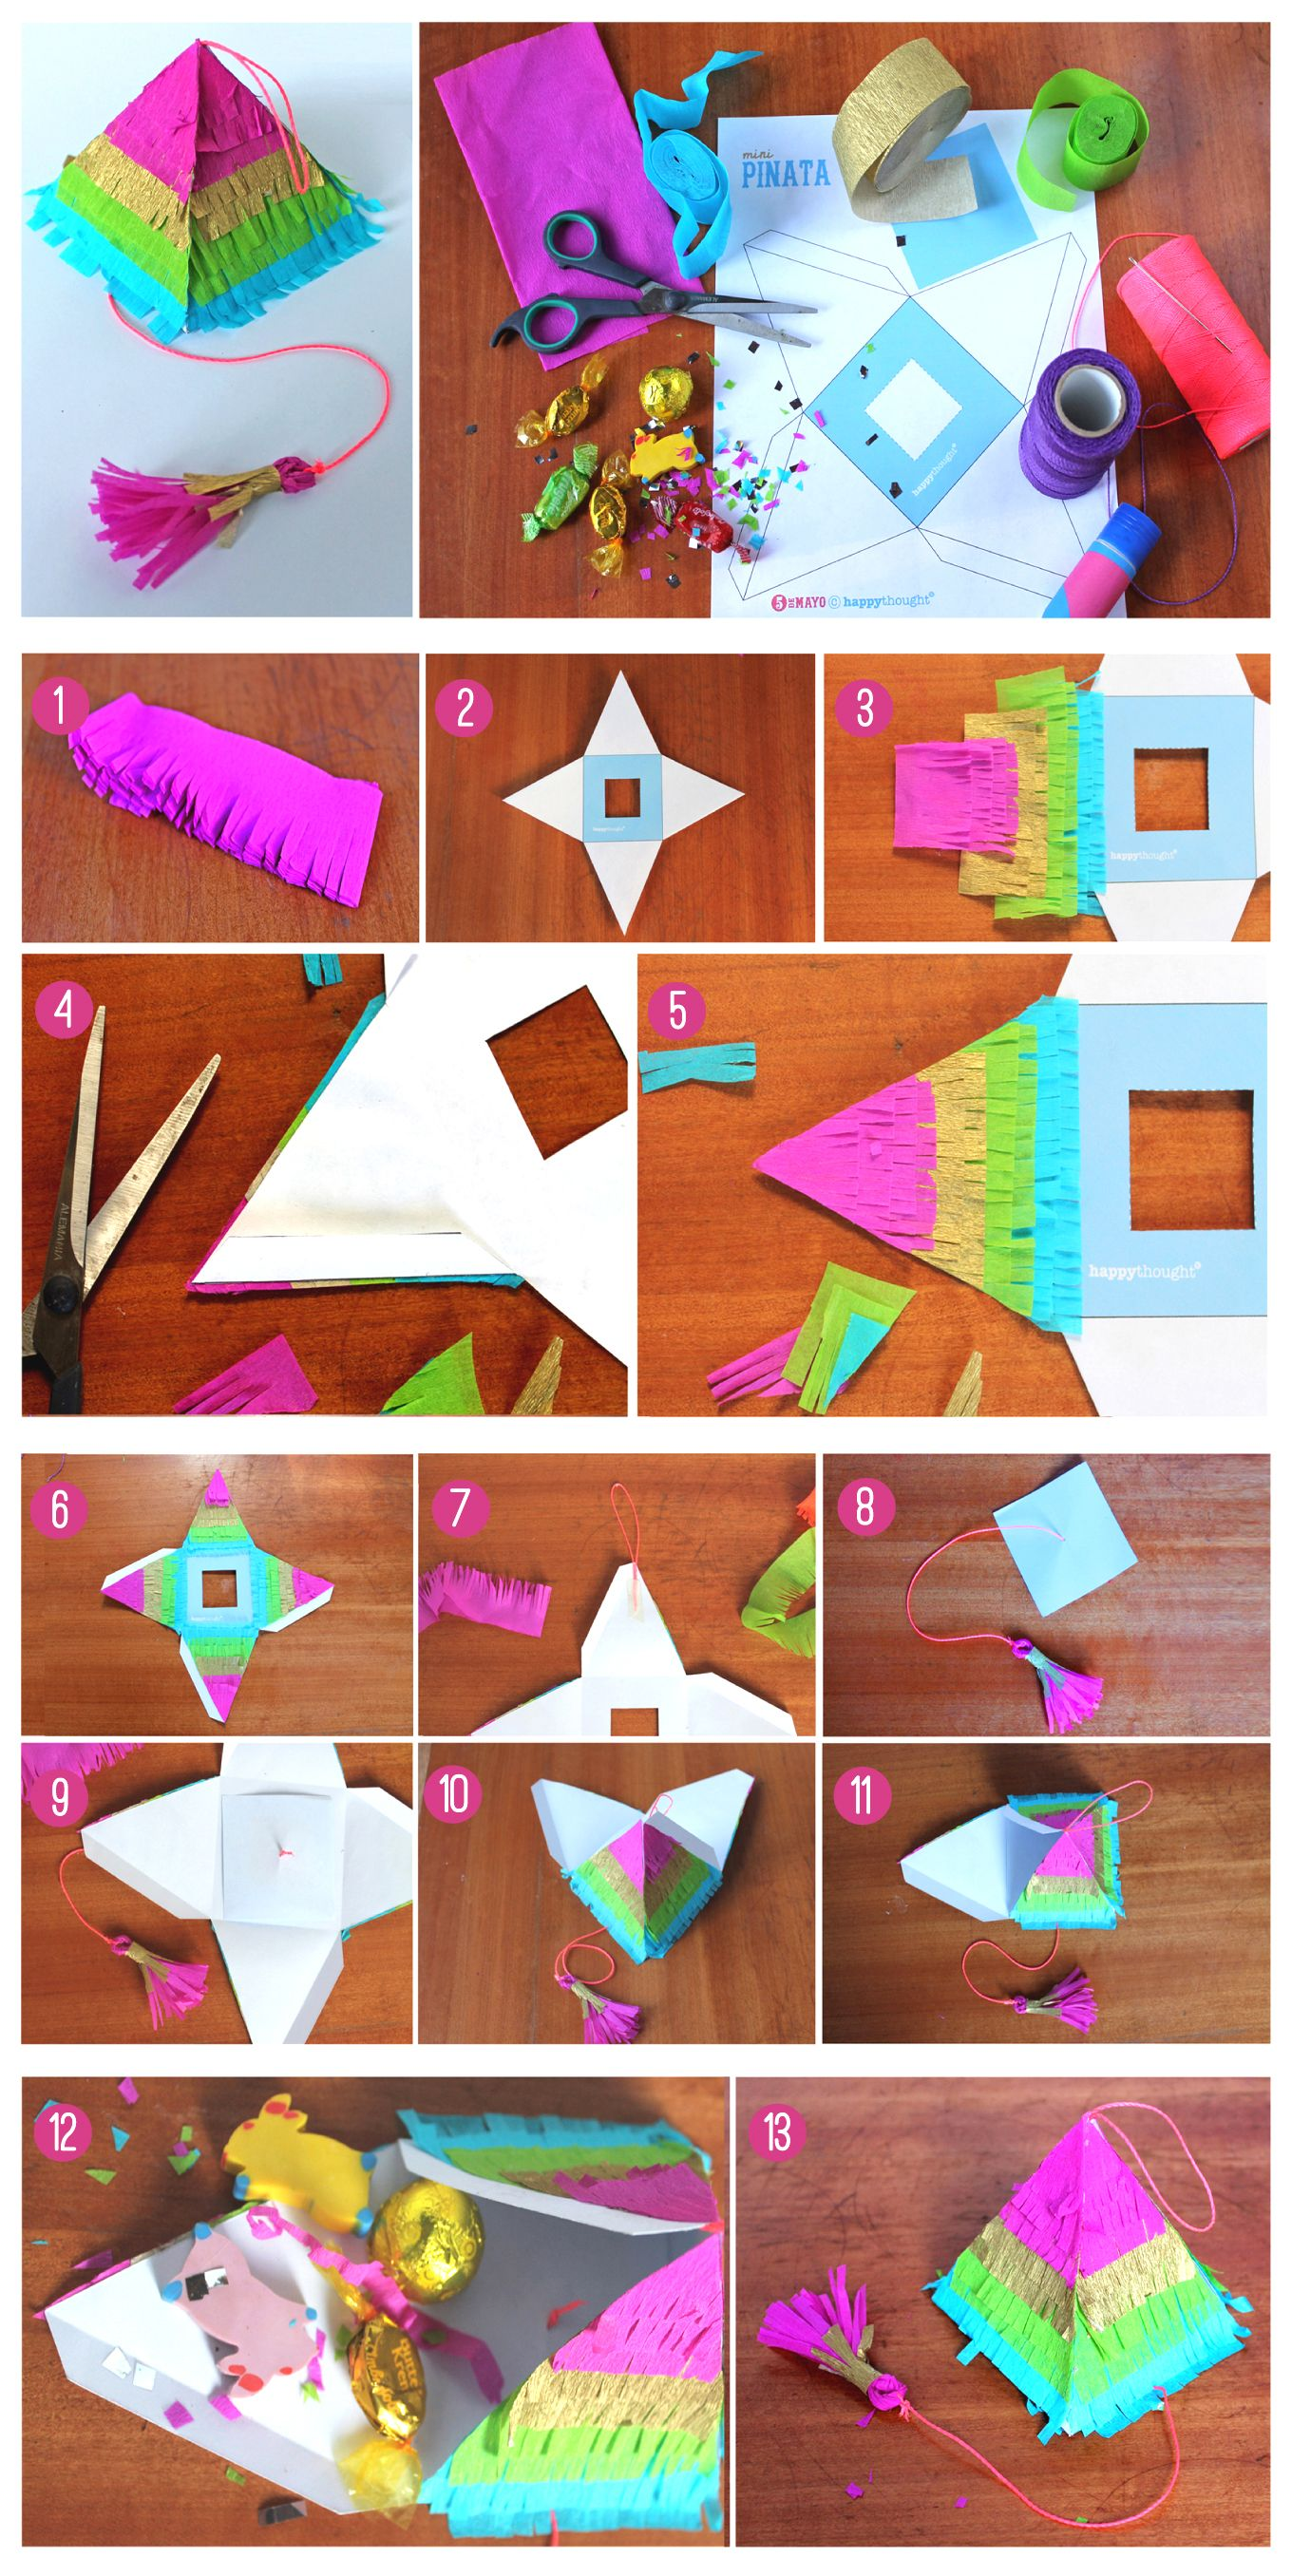 How To Make A Pinata Video Tutorial PDF Worksheets Ideal For Art Class Projects Parties And Decorations